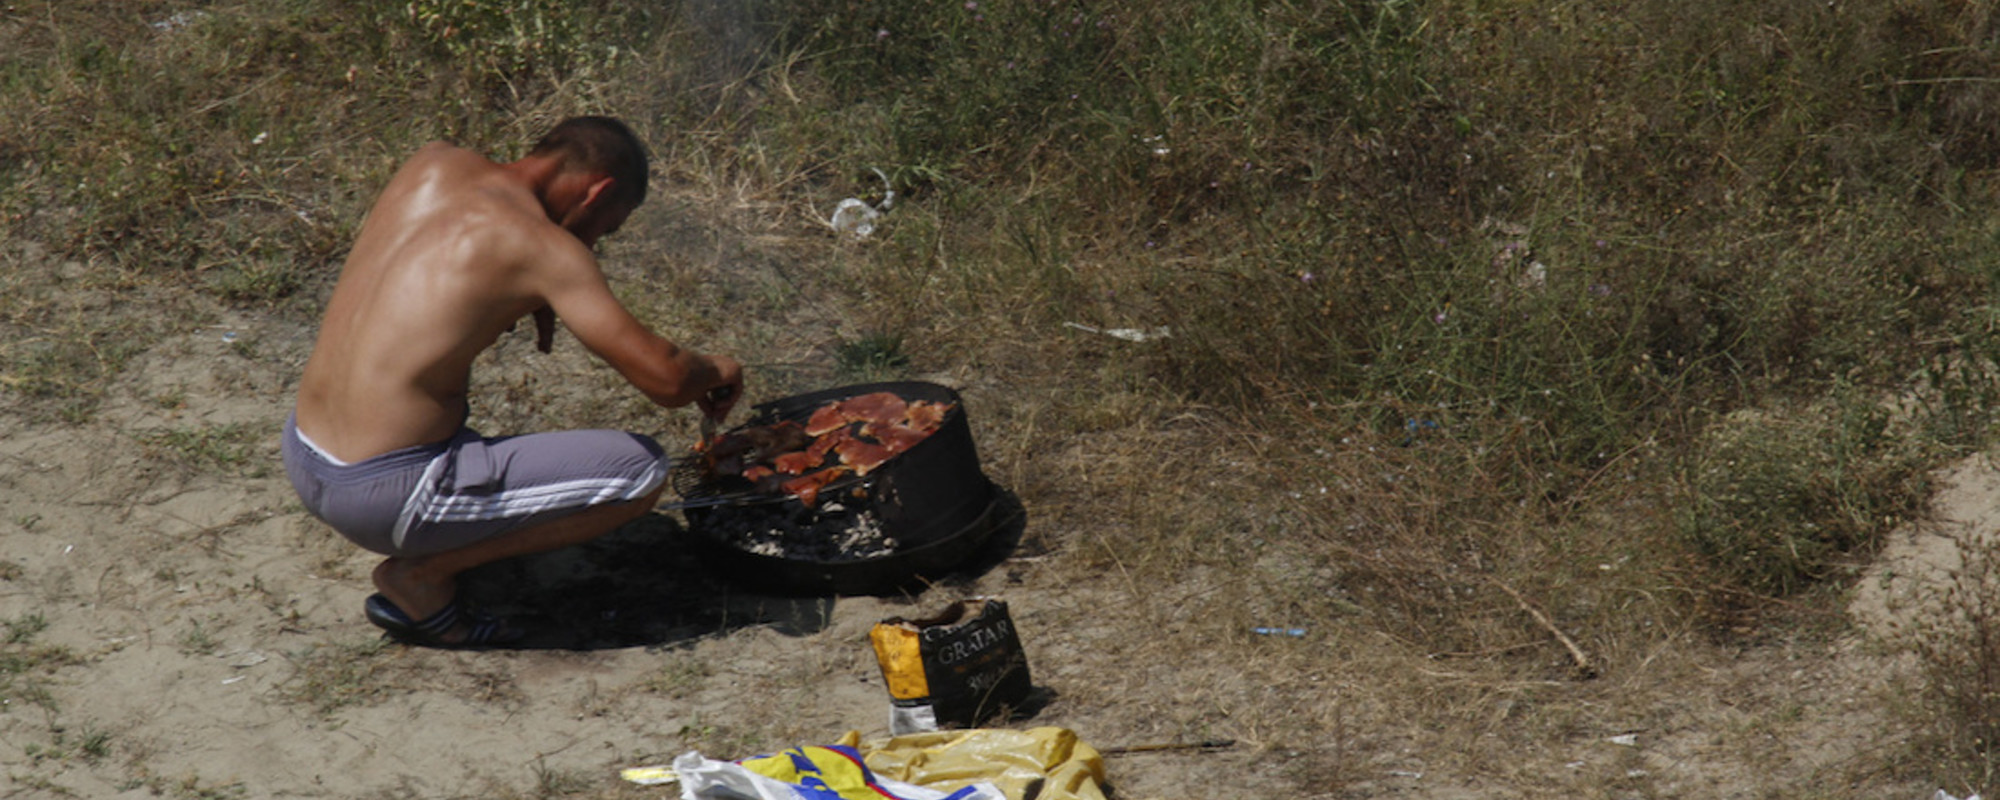 Romania's Roadside Barbecues